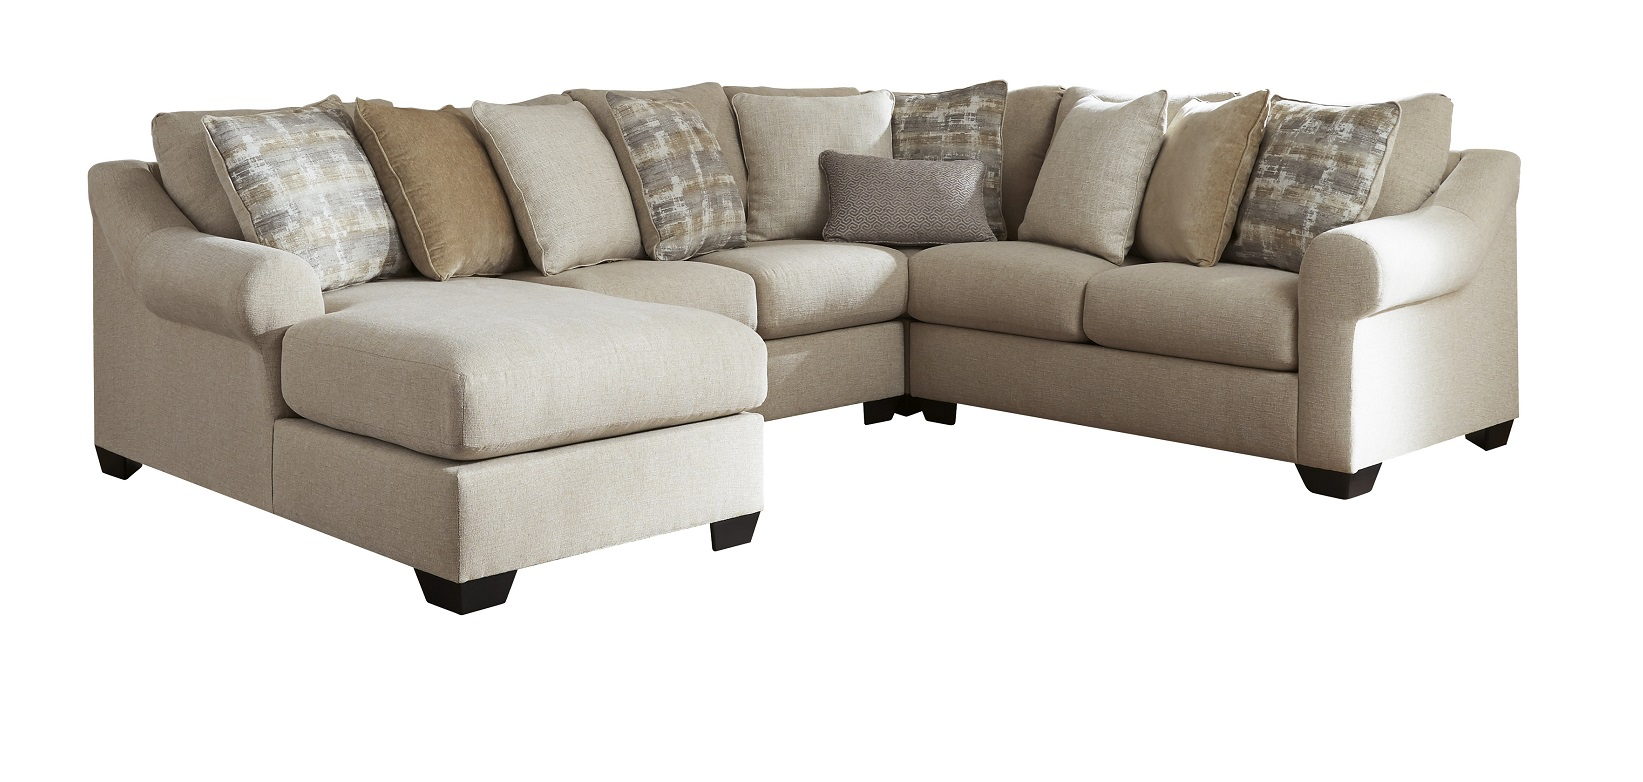 Ingles Sectional Image